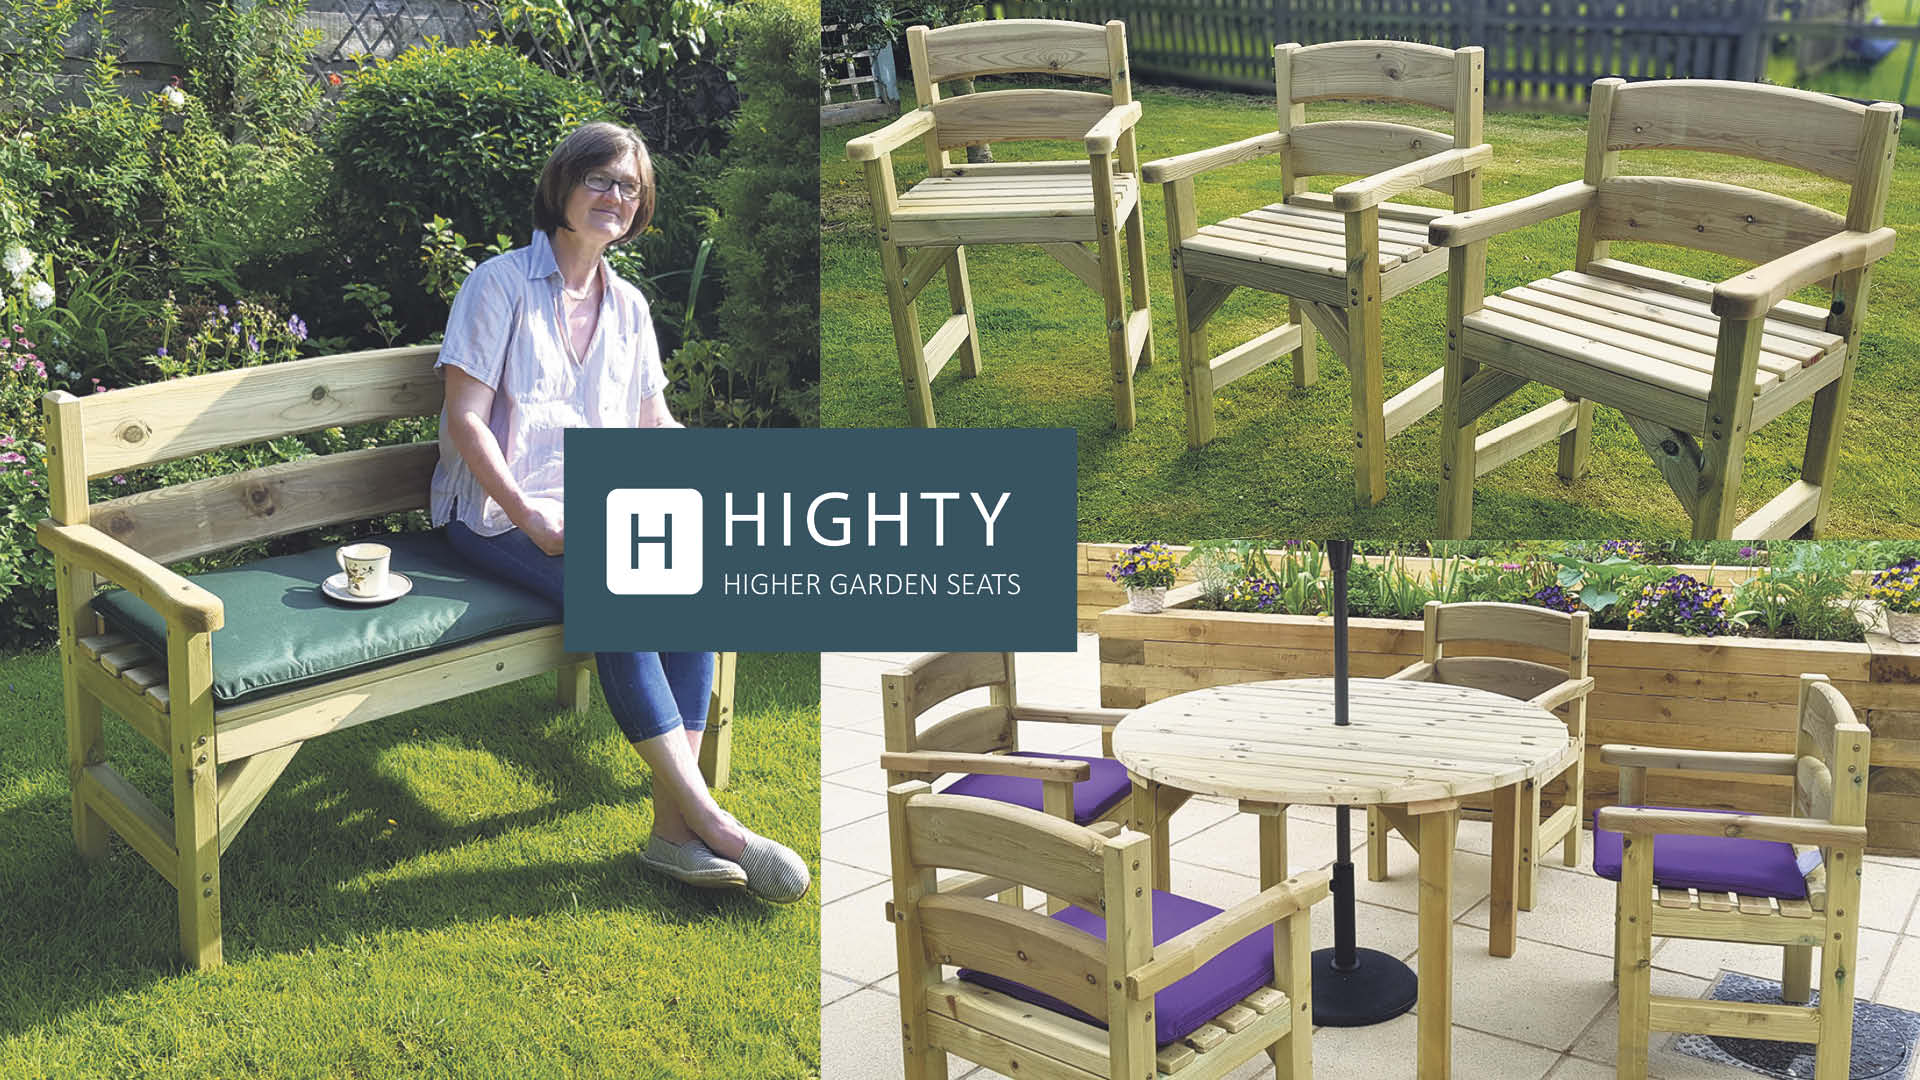 Win garden furniture your joints will thank you for Worth £500!